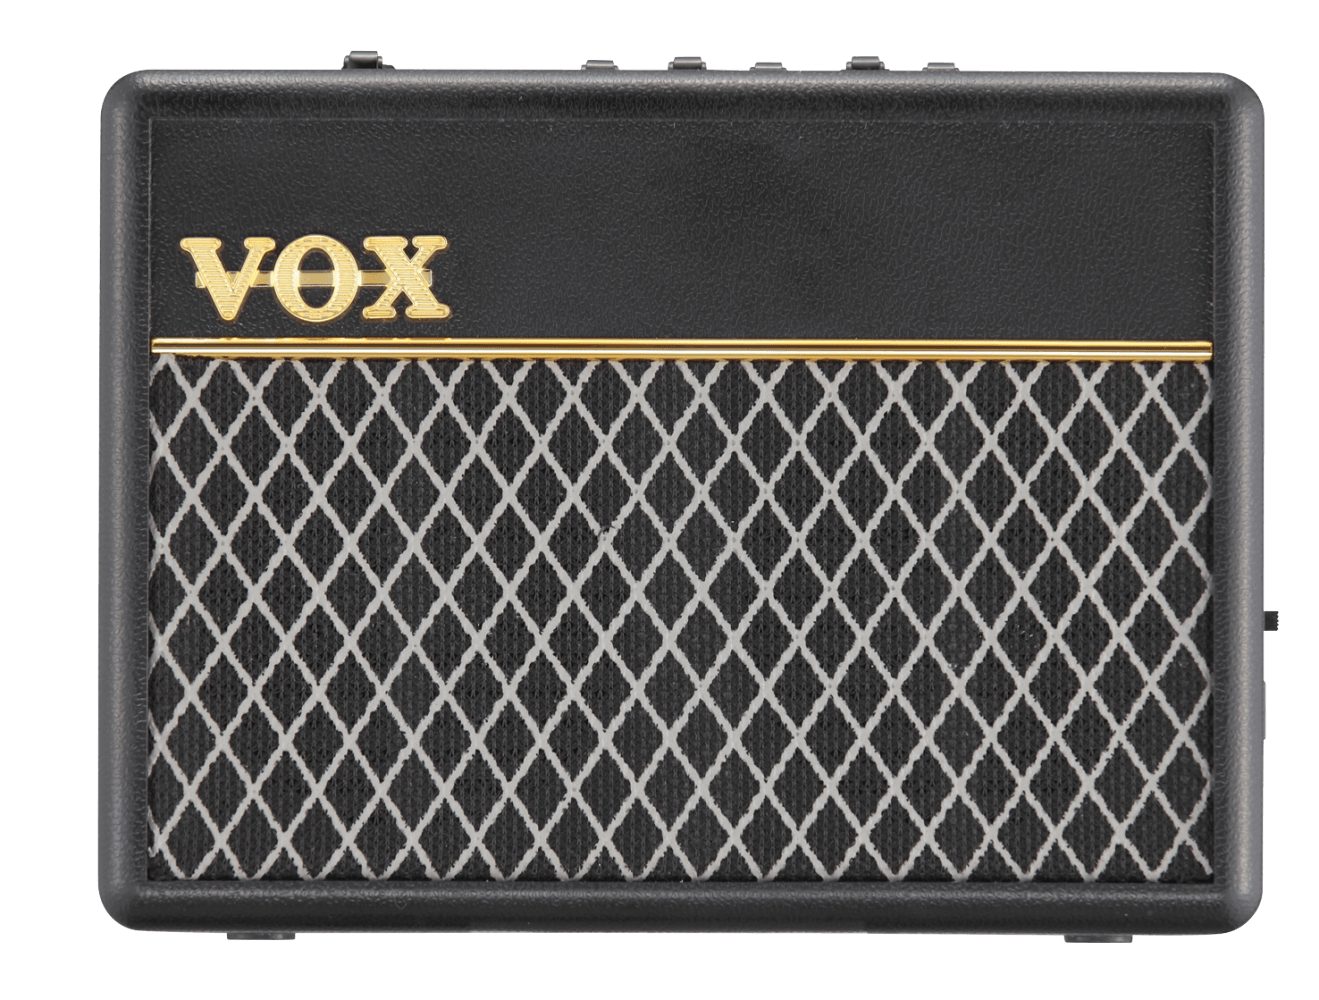 black VOX amplifier